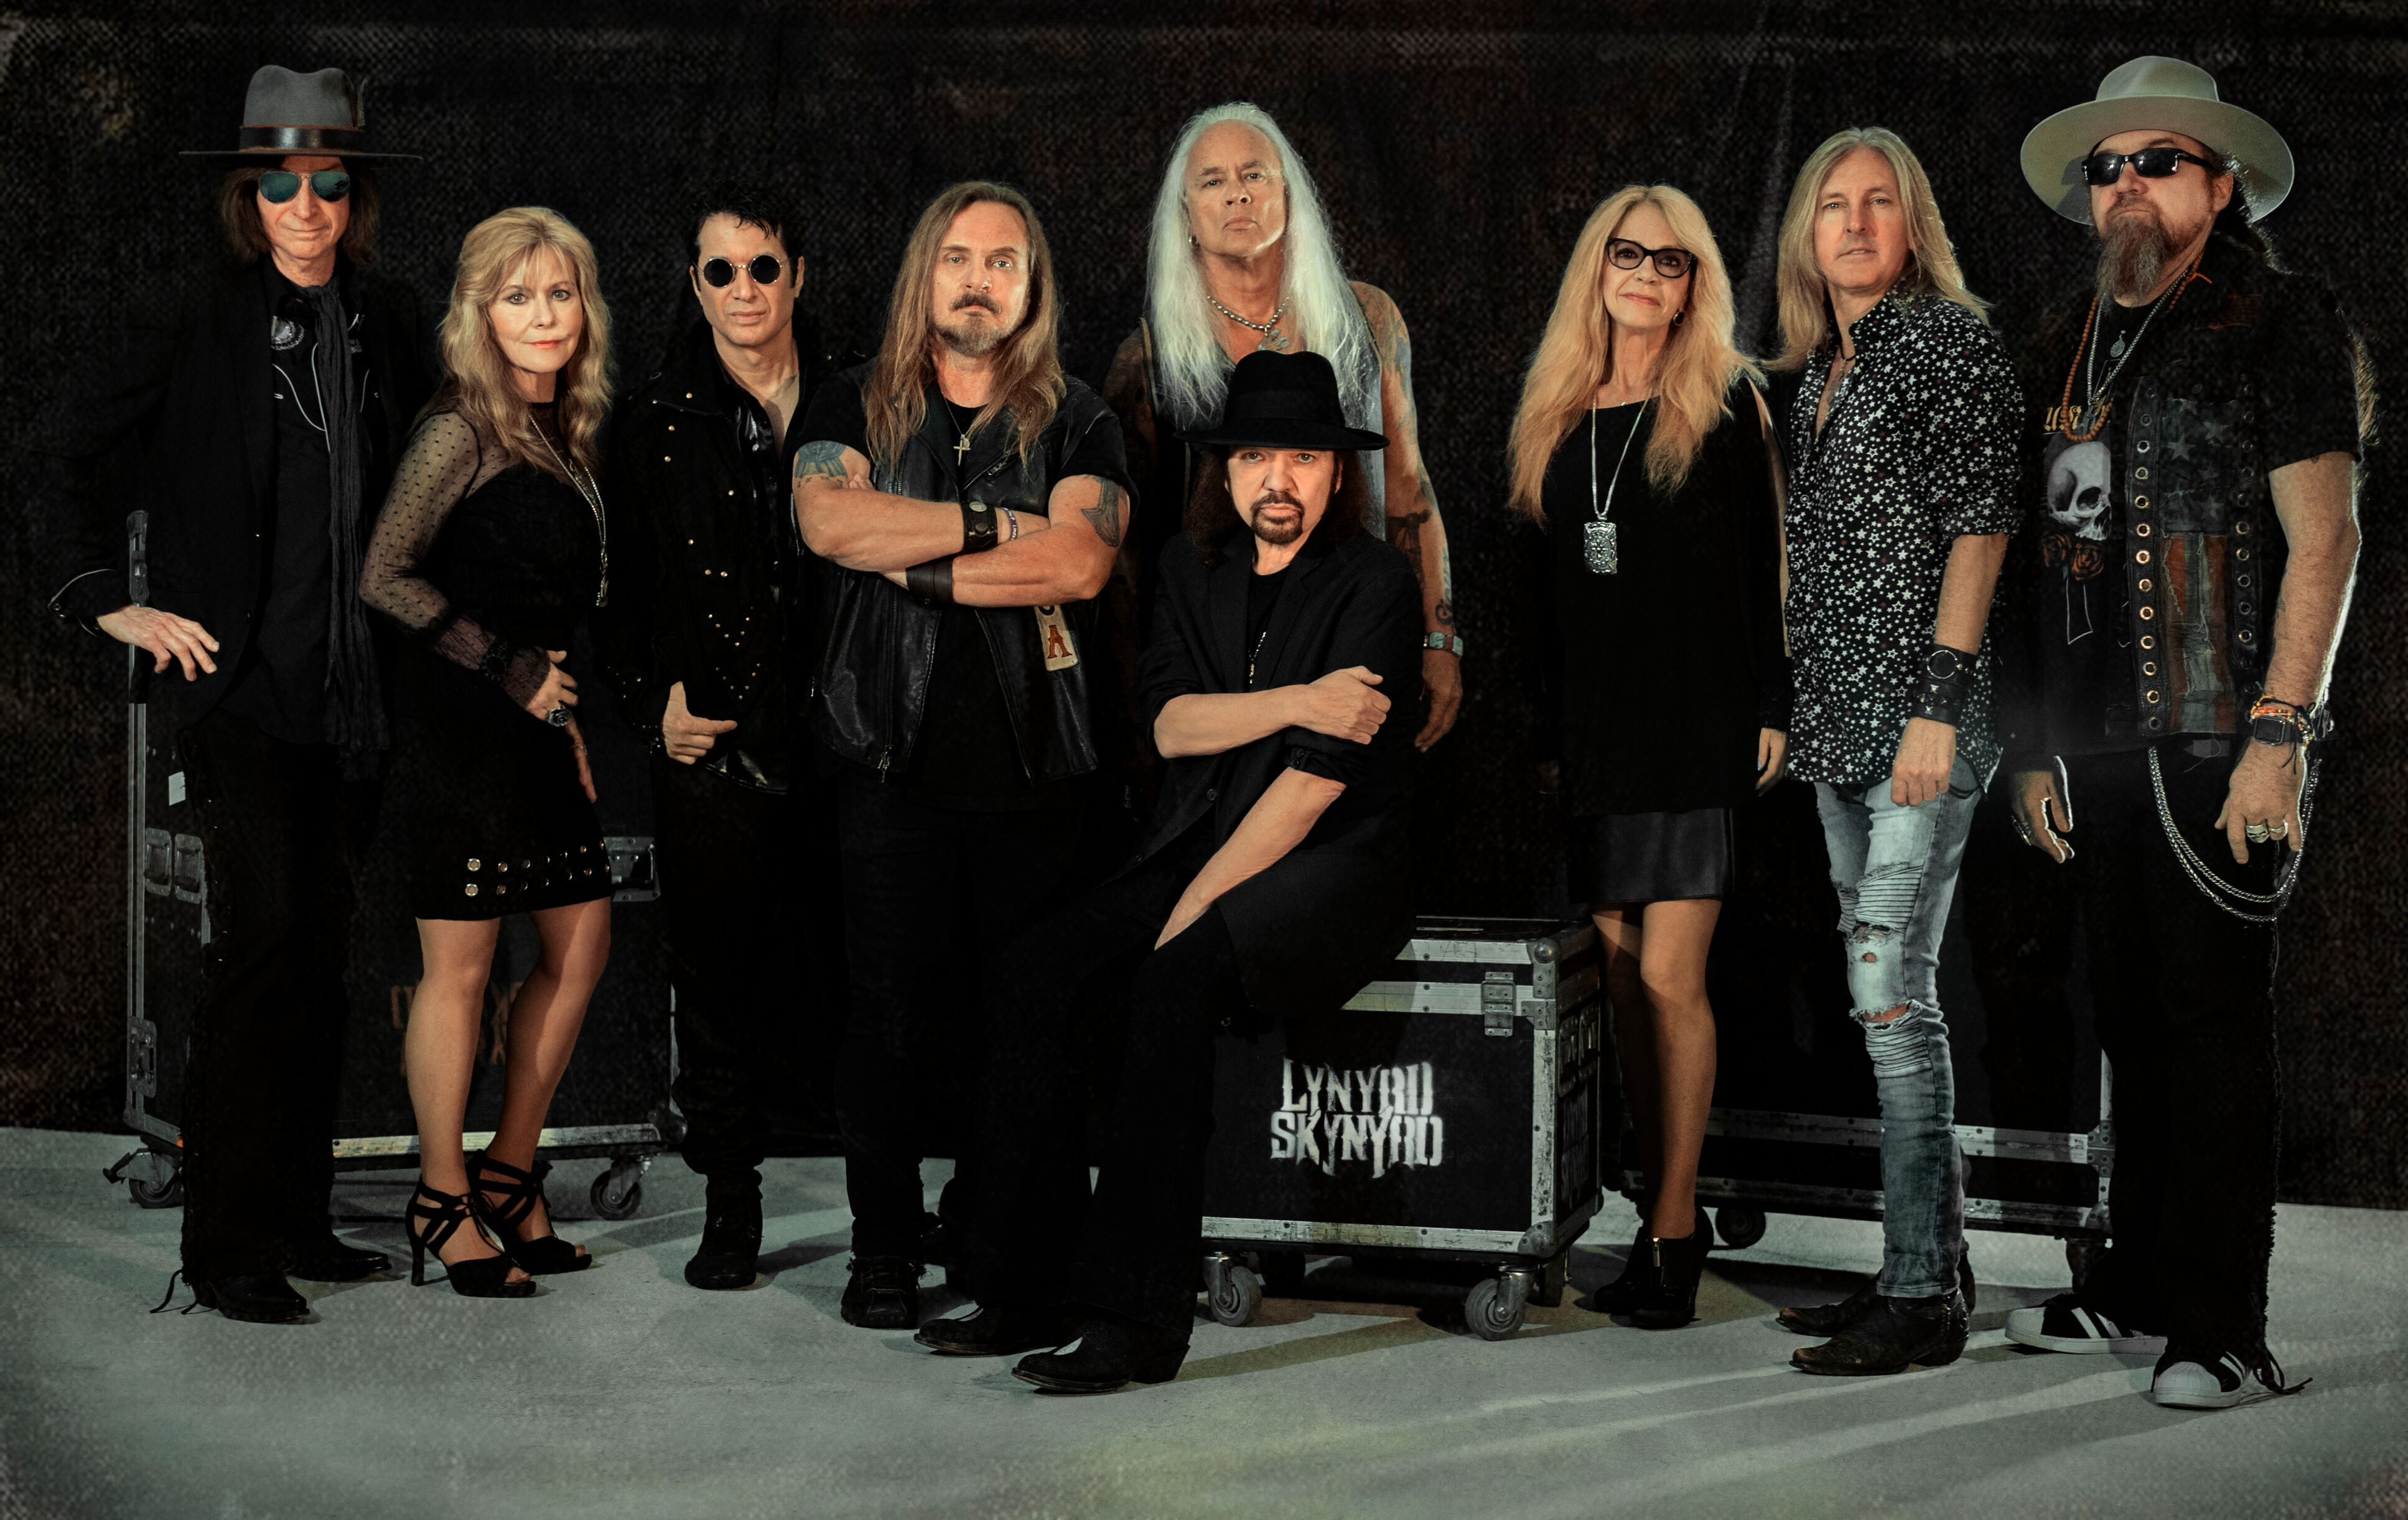 Lynyrd Skynyrd to Release Live Album from Farewell Tour Nov. 1